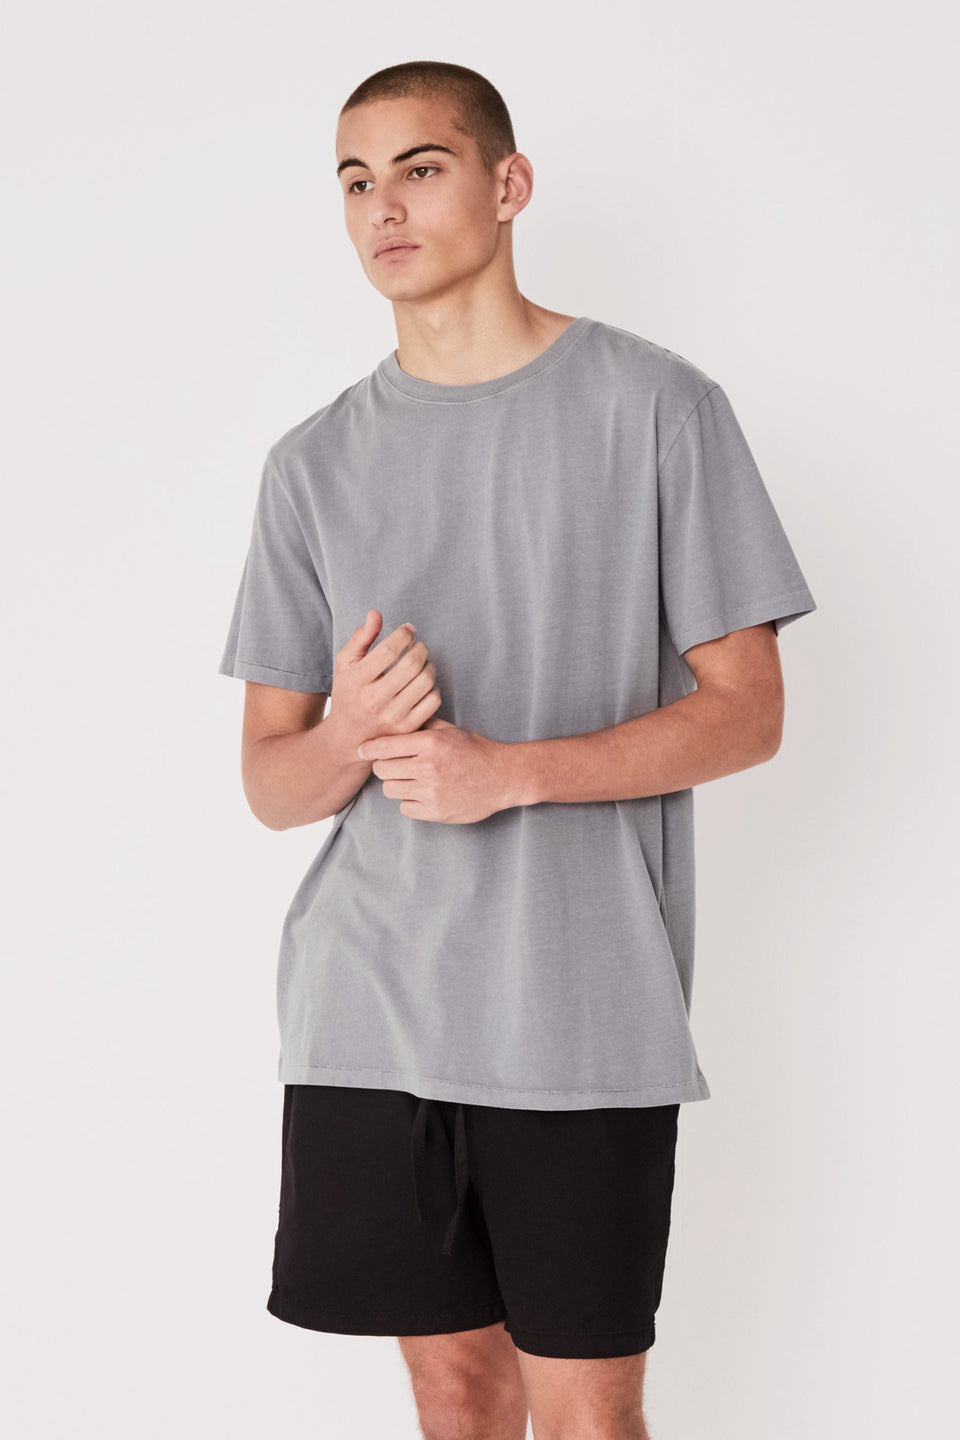 Standard Tee - Harbour Blue